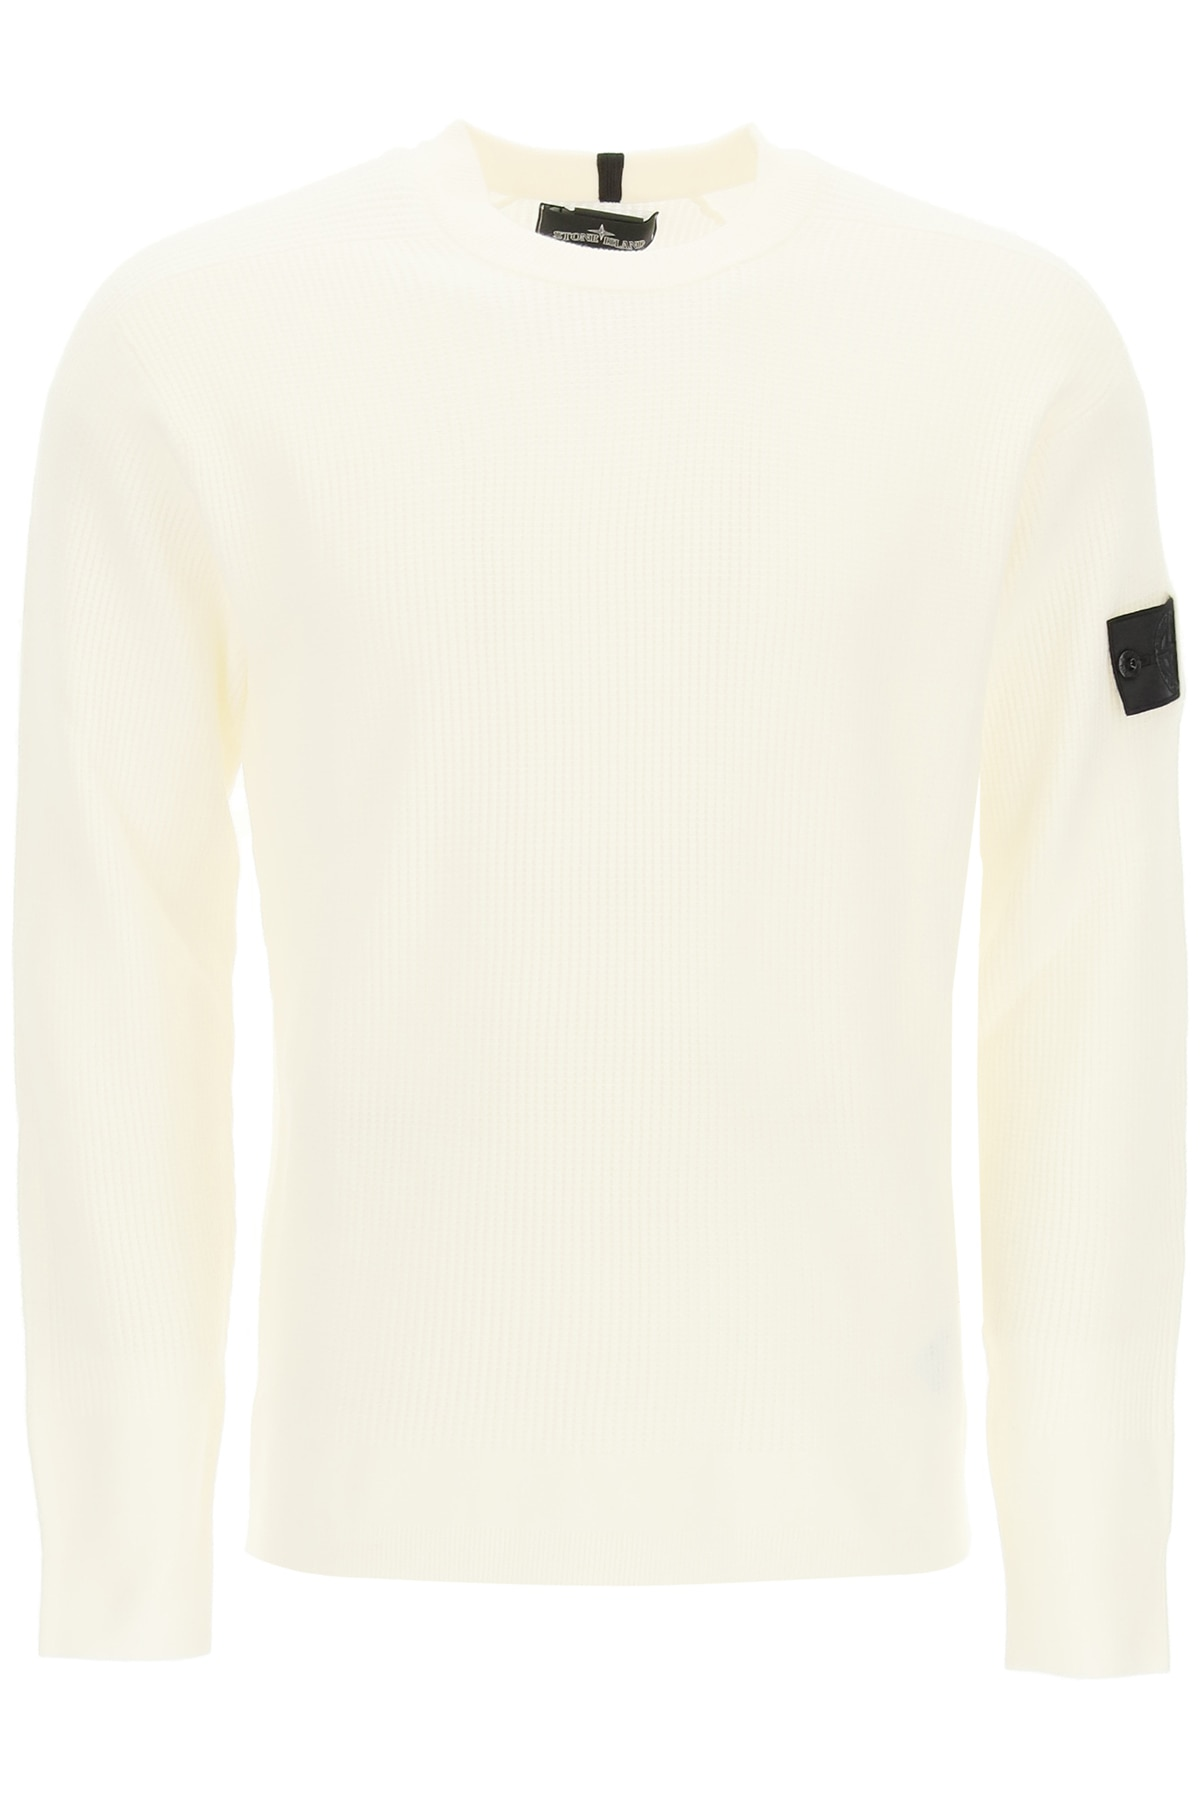 STONE ISLAND SHADOW PROJECT TEXTURED WOOL BLEND CREWNECK SWEATER M White Wool